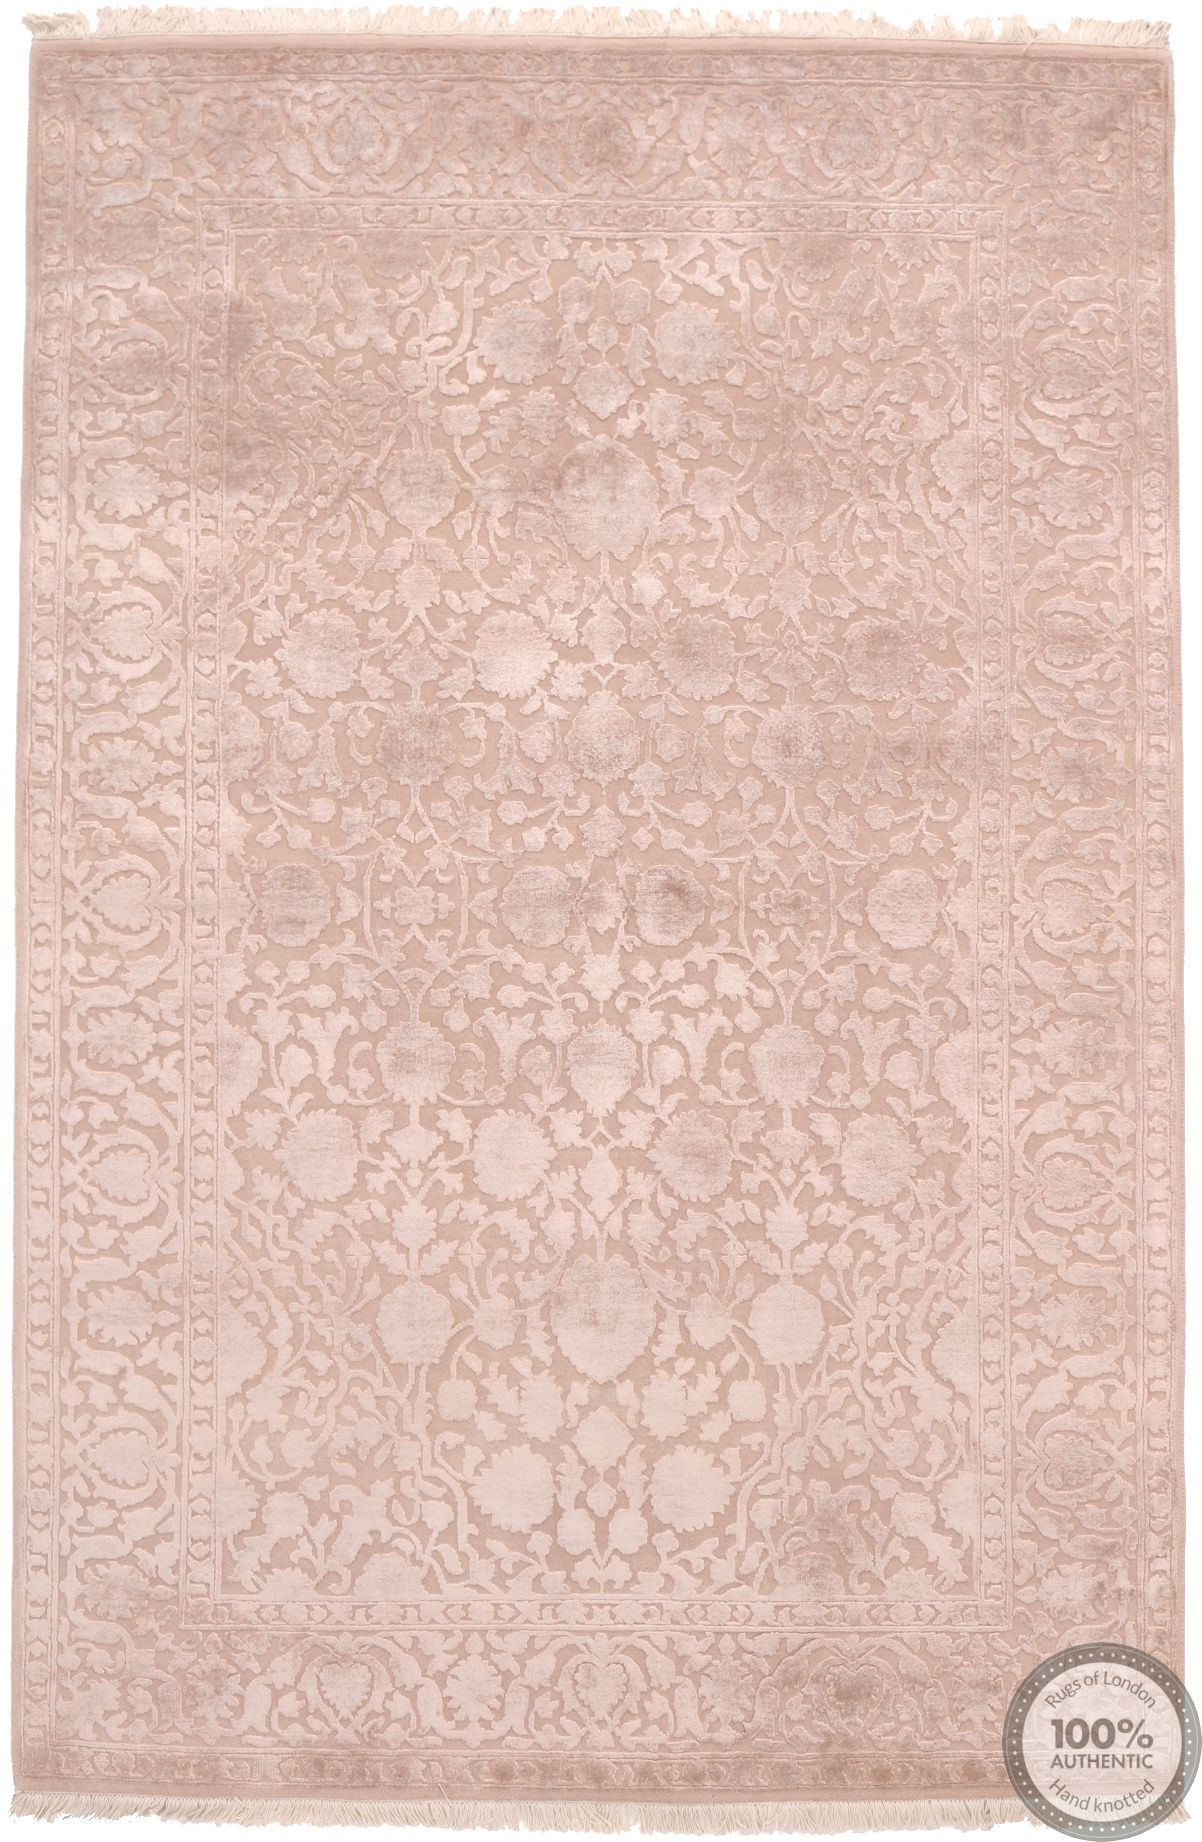 Keshan design contemporary Indian rug - 5'18 x 7'91